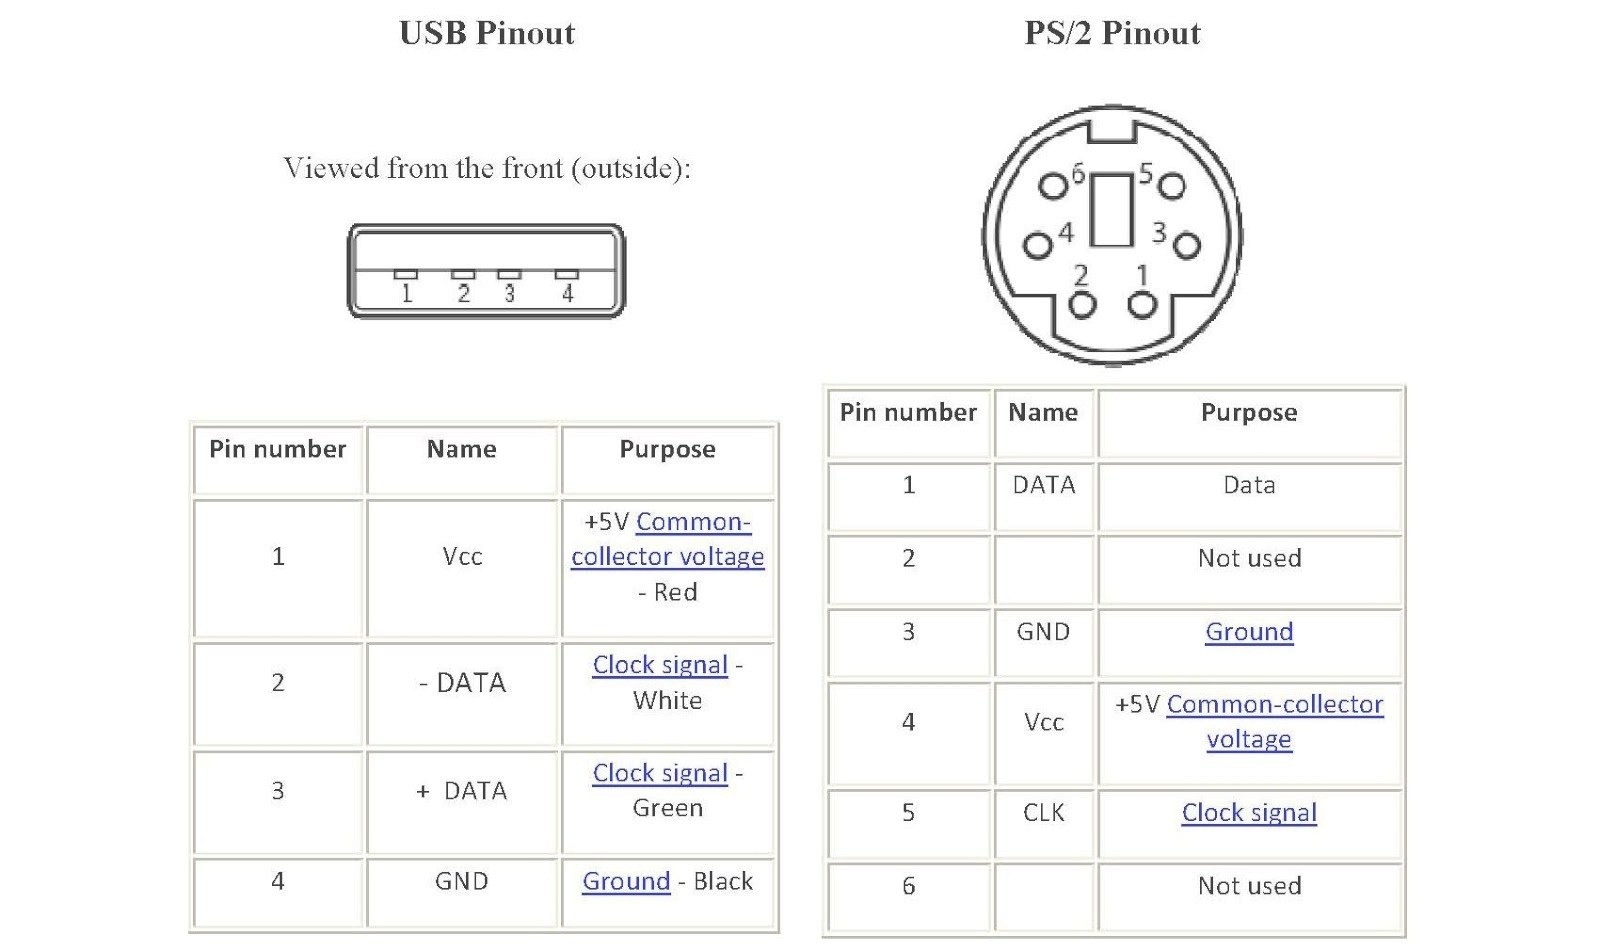 Ps2 Usb Wiring Diagram | Manual E-Books - Ps2 Mouse To Usb Wiring Diagram -Power